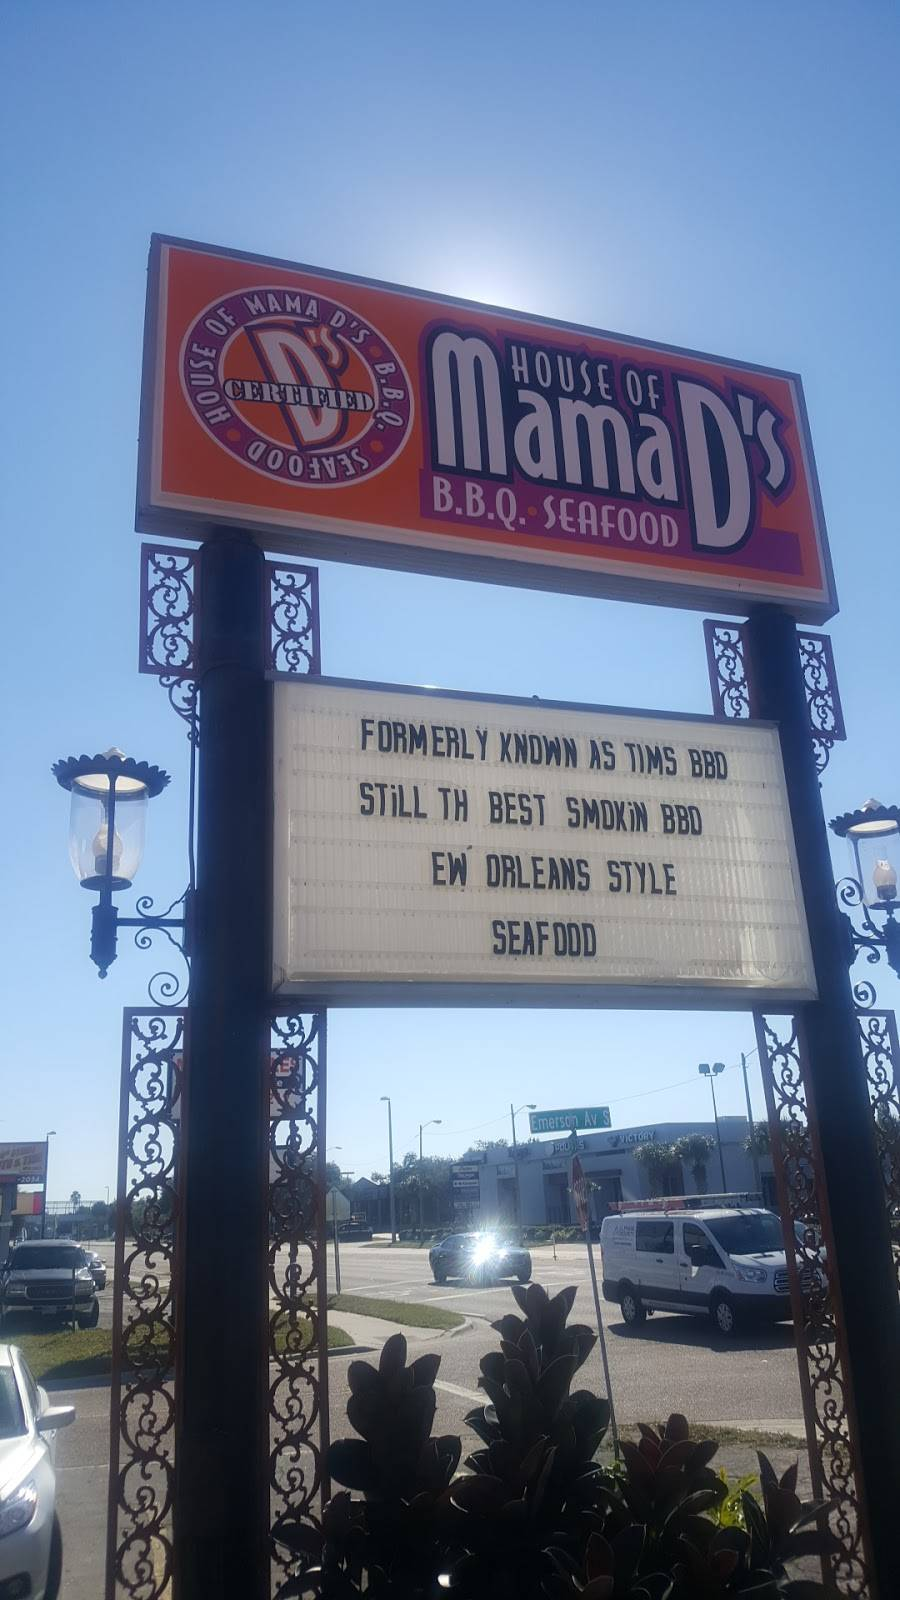 House of Mama Ds BBQ & Seafood   restaurant   530 34th St S, St. Petersburg, FL 33711, USA   7278009896 OR +1 727-800-9896